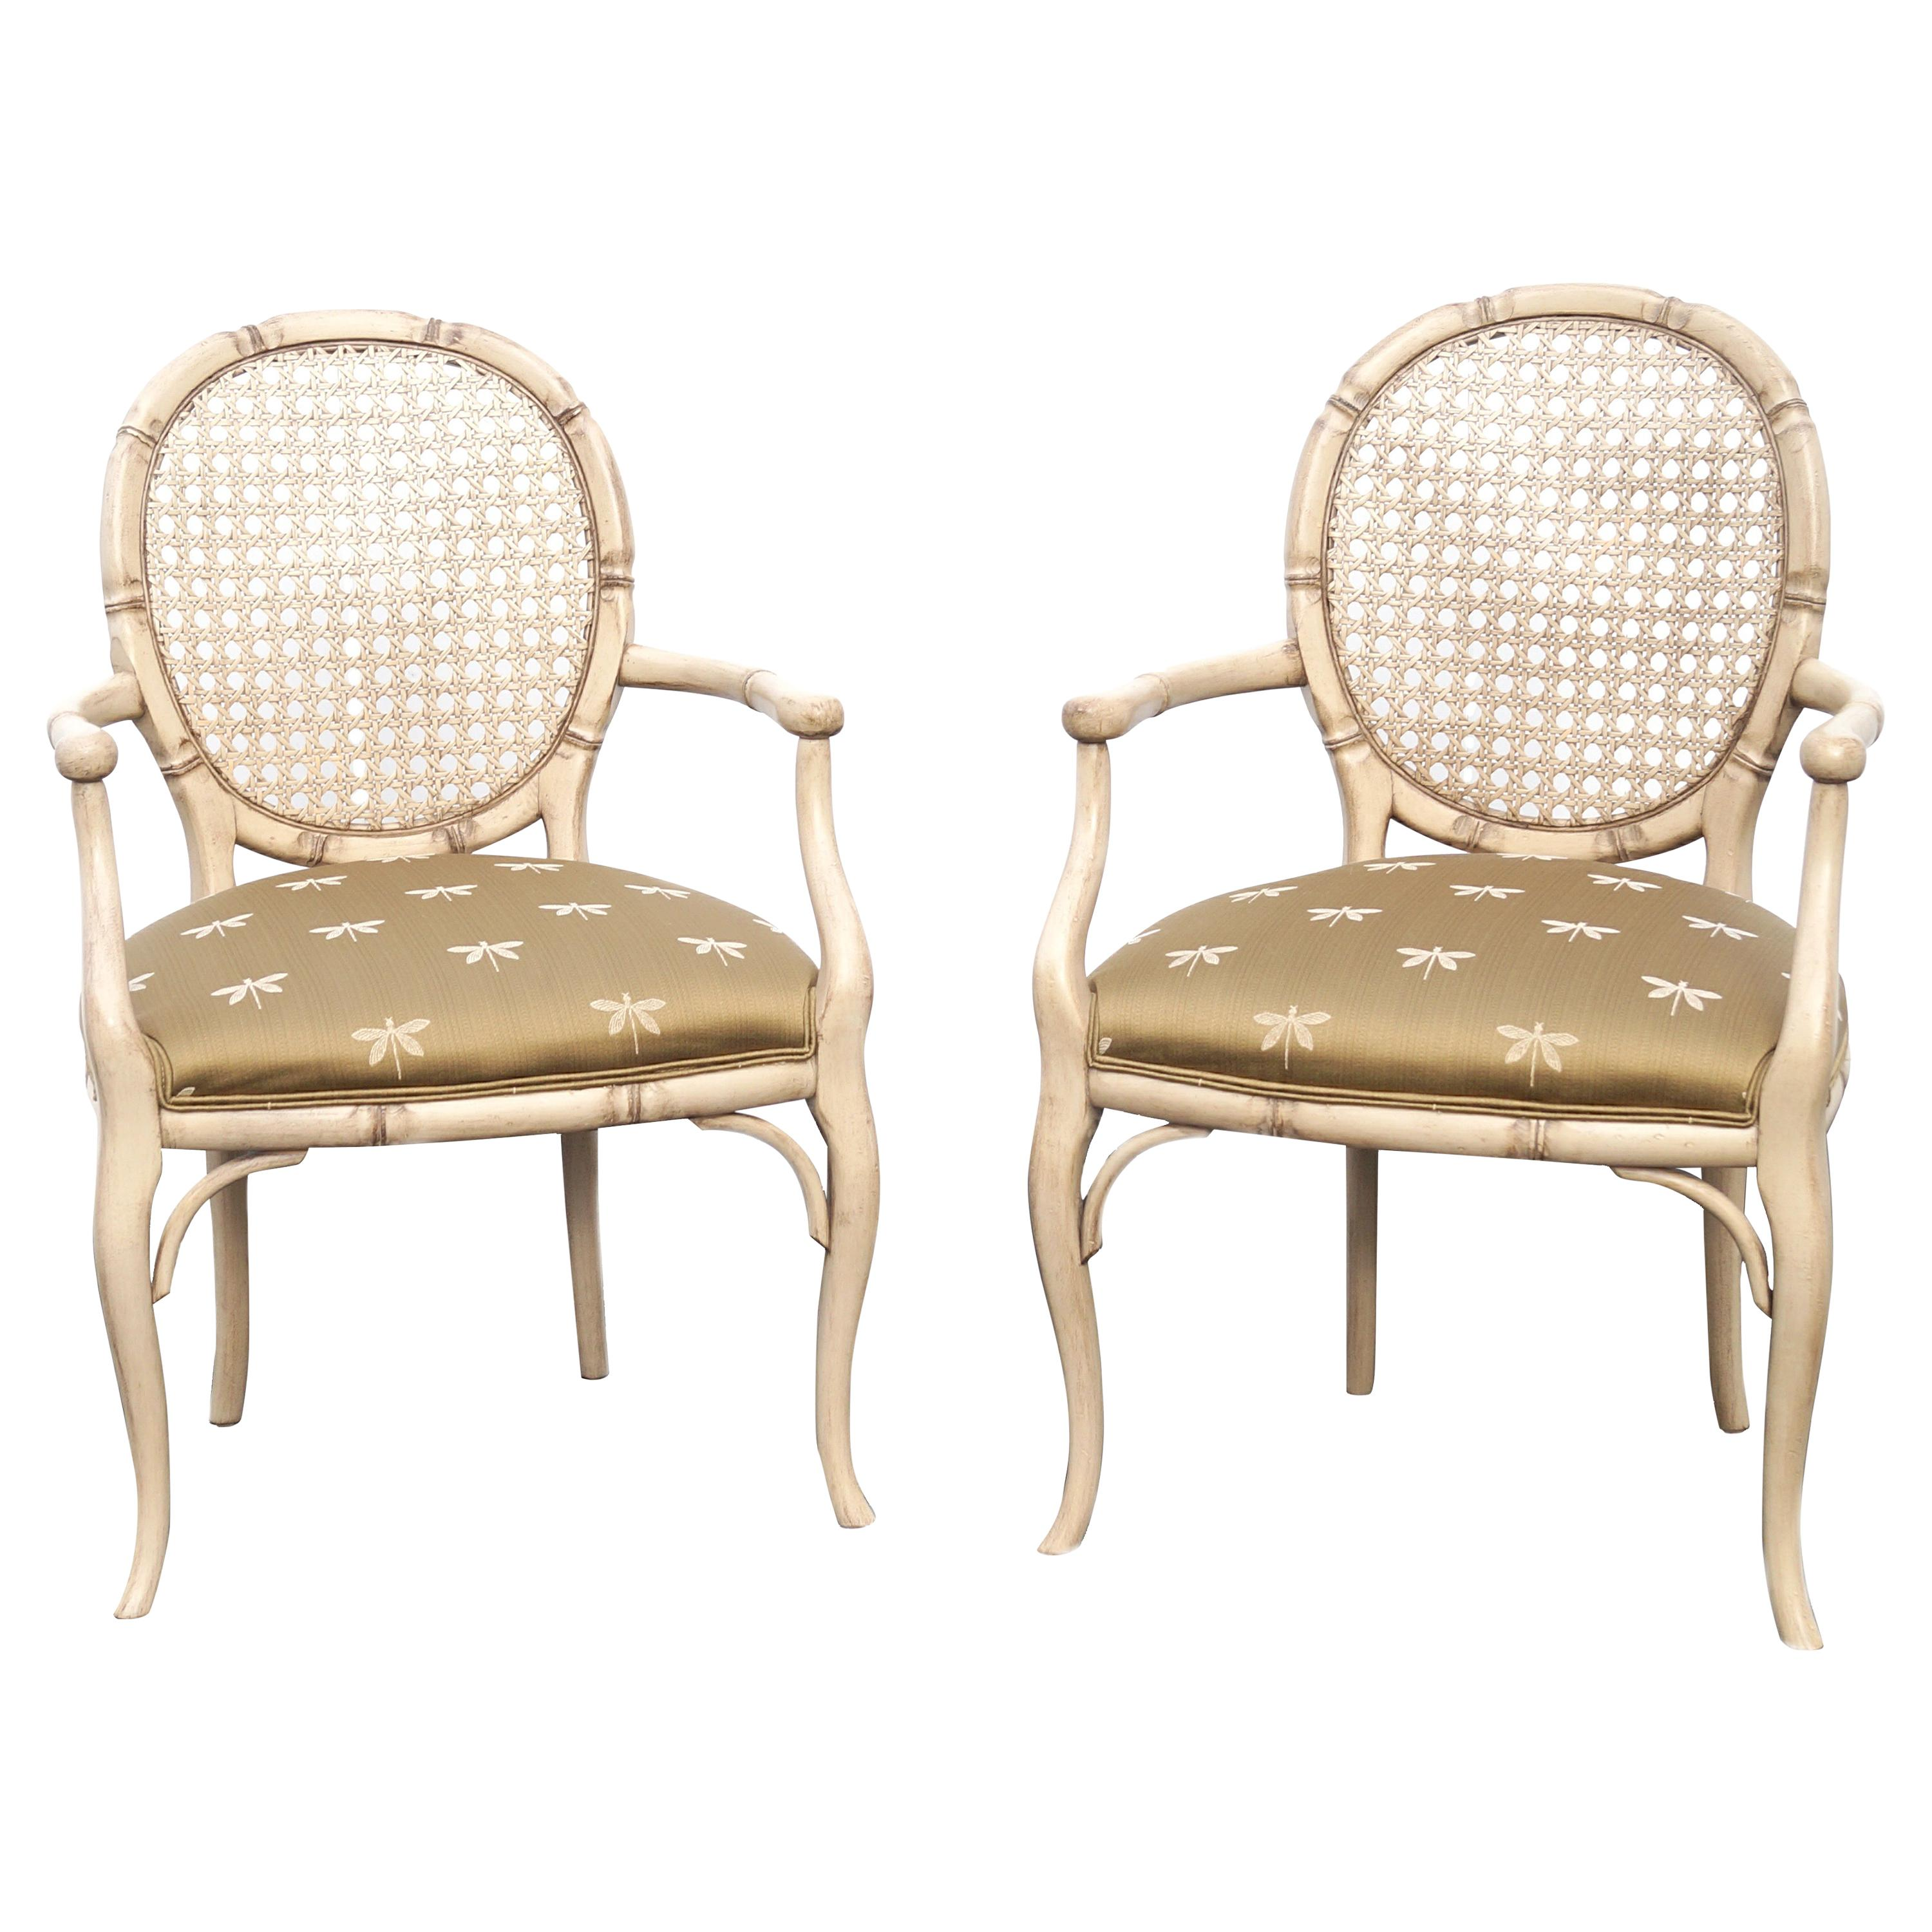 Hollywood Regency Modern French Style Cane Back Pair of Chairs